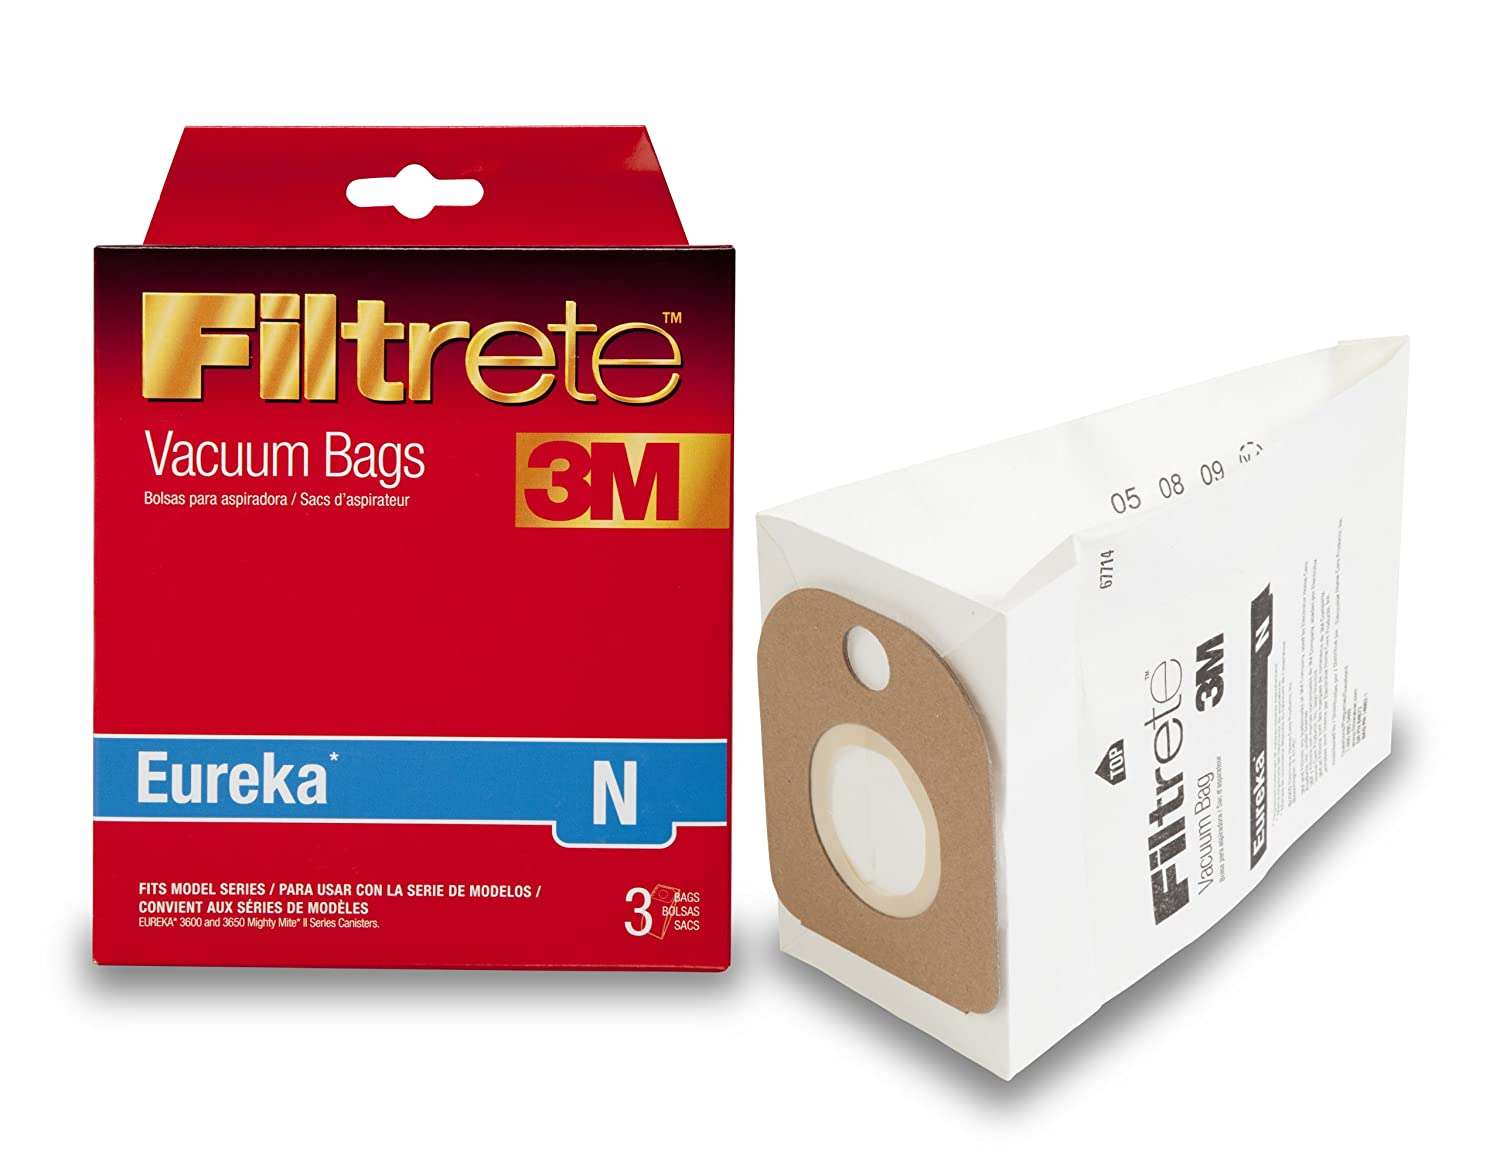 3M Filtrete Eureka N Allergen Vacuum Bag Red